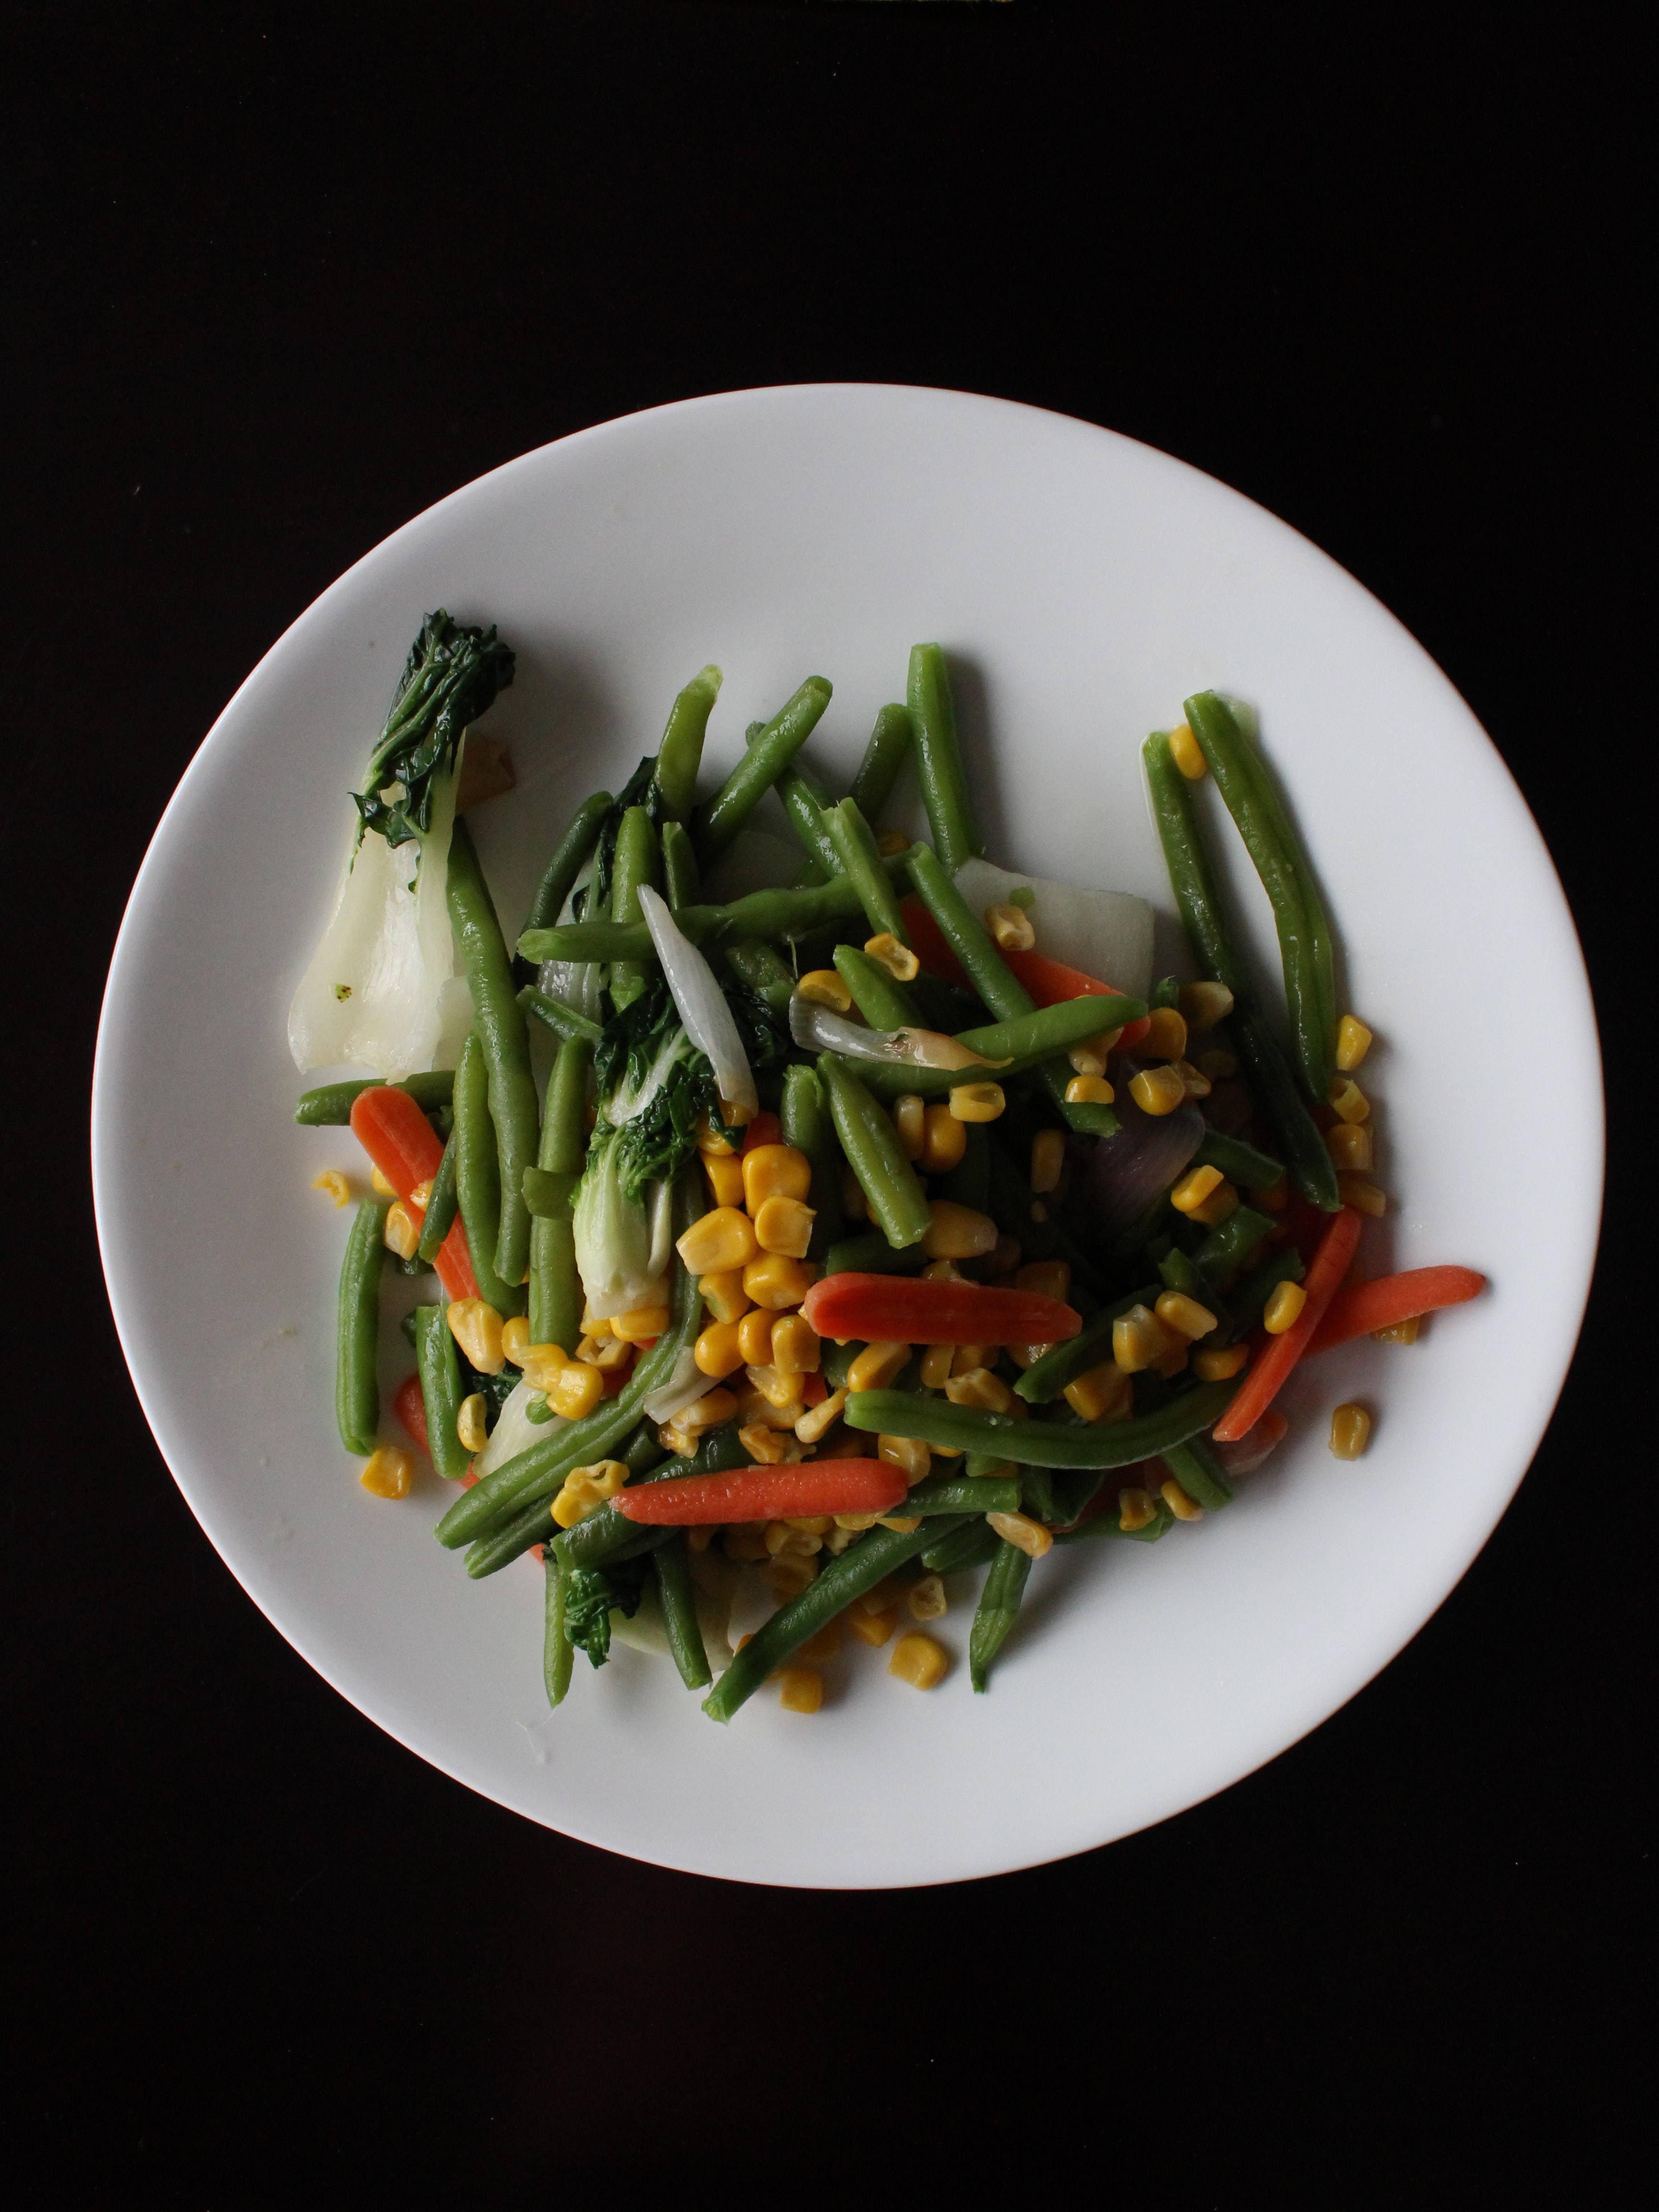 corns and sliced carrots on white plate